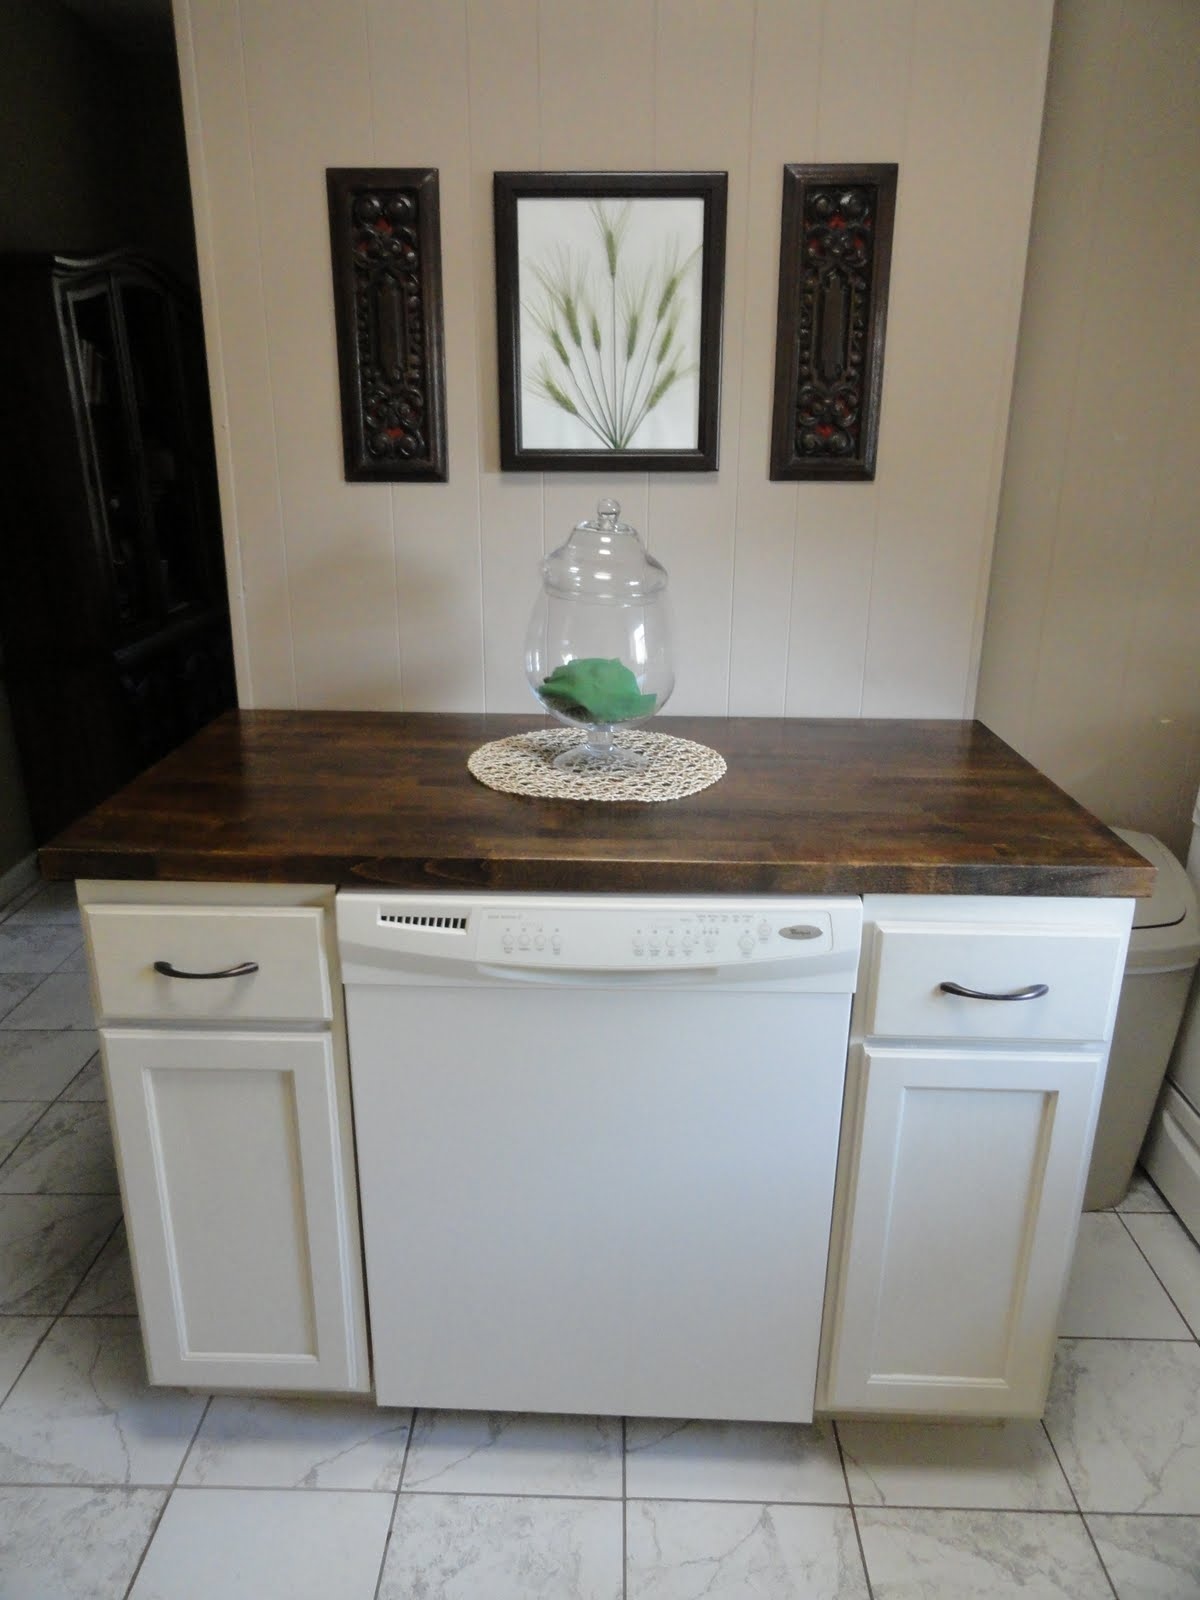 Gap Between Stove And Countertop The Precious Little Things In Life Diy Dishwasher Cabinet